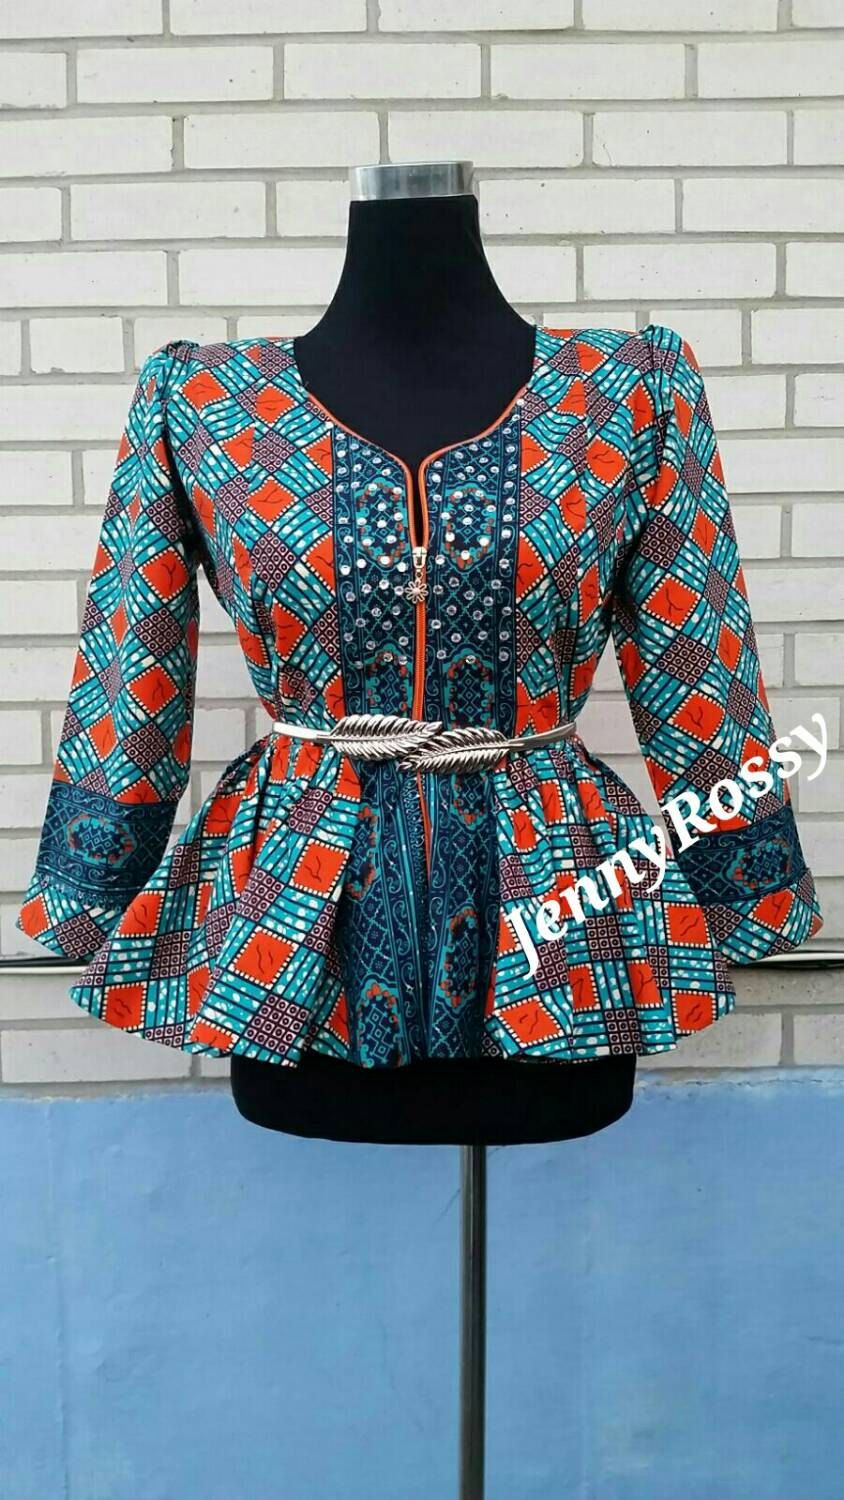 6f3b80def9e4f4 Jenny Rossy African print peplum top African blouse with rhinestone design  jacket zipper top African clothing ankara women size us 0-18 (105.00 CAD)  by ...